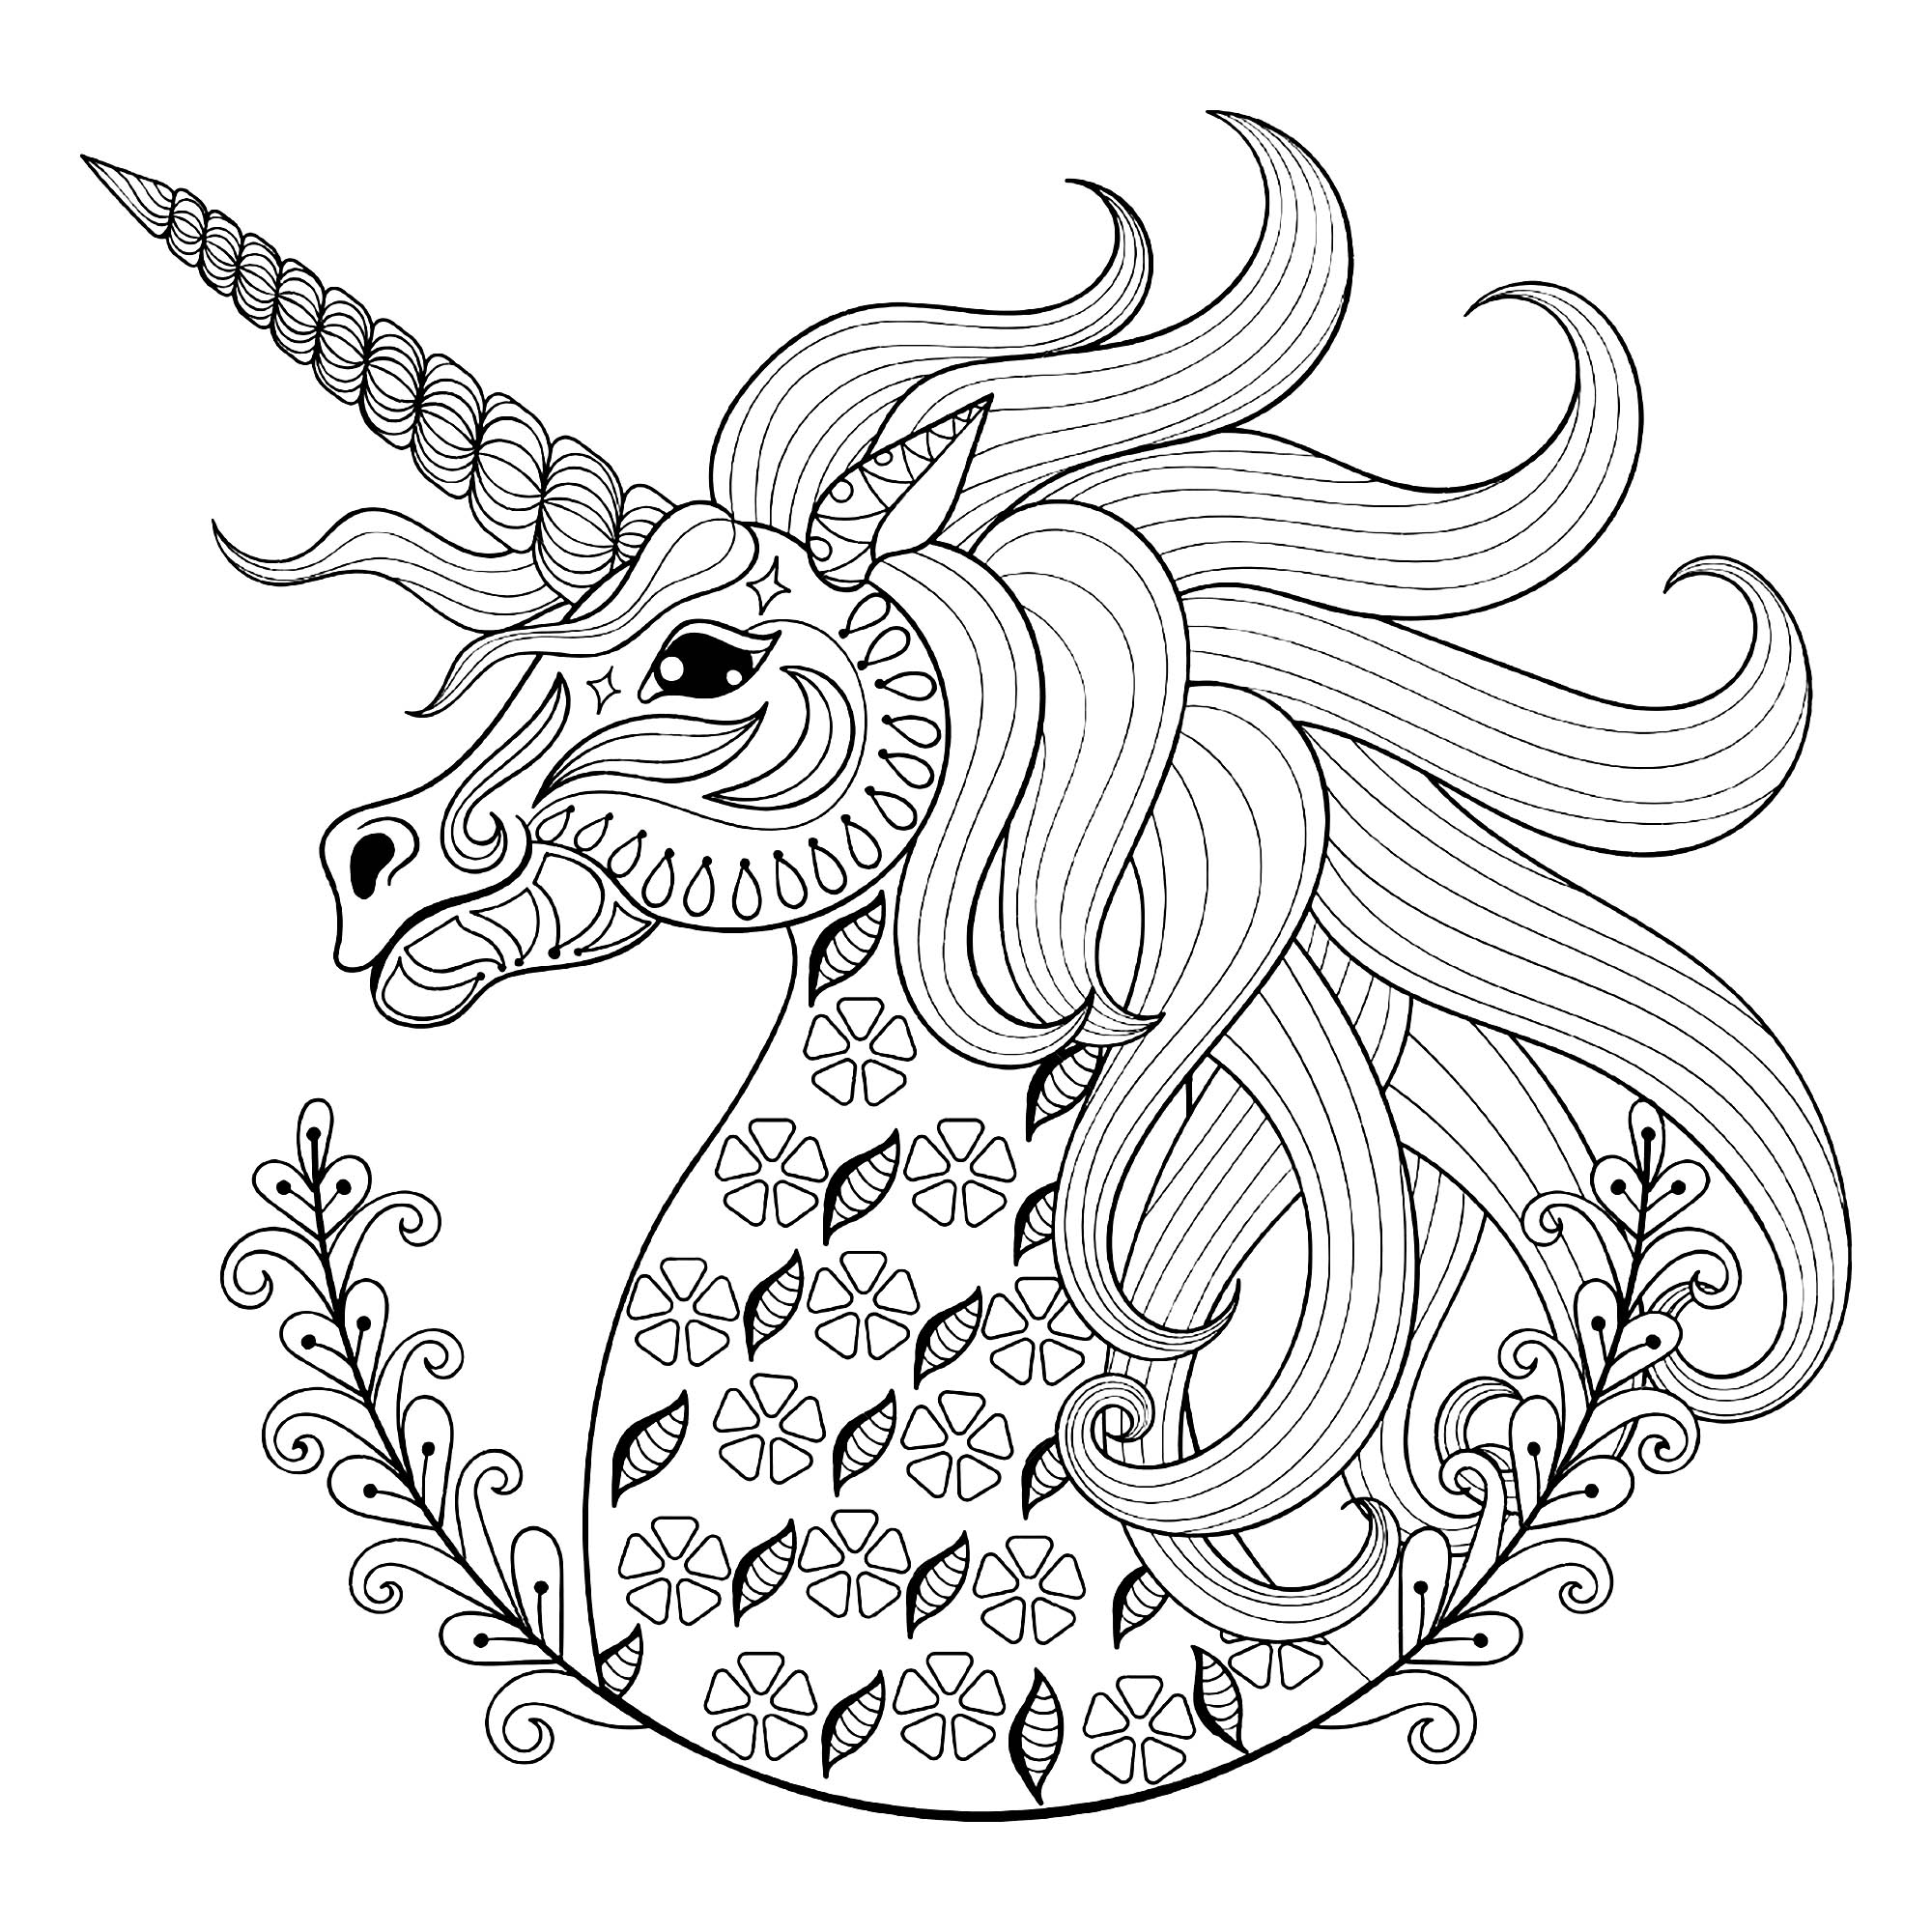 Unicornu0027s Head With Simple Floral Patterns